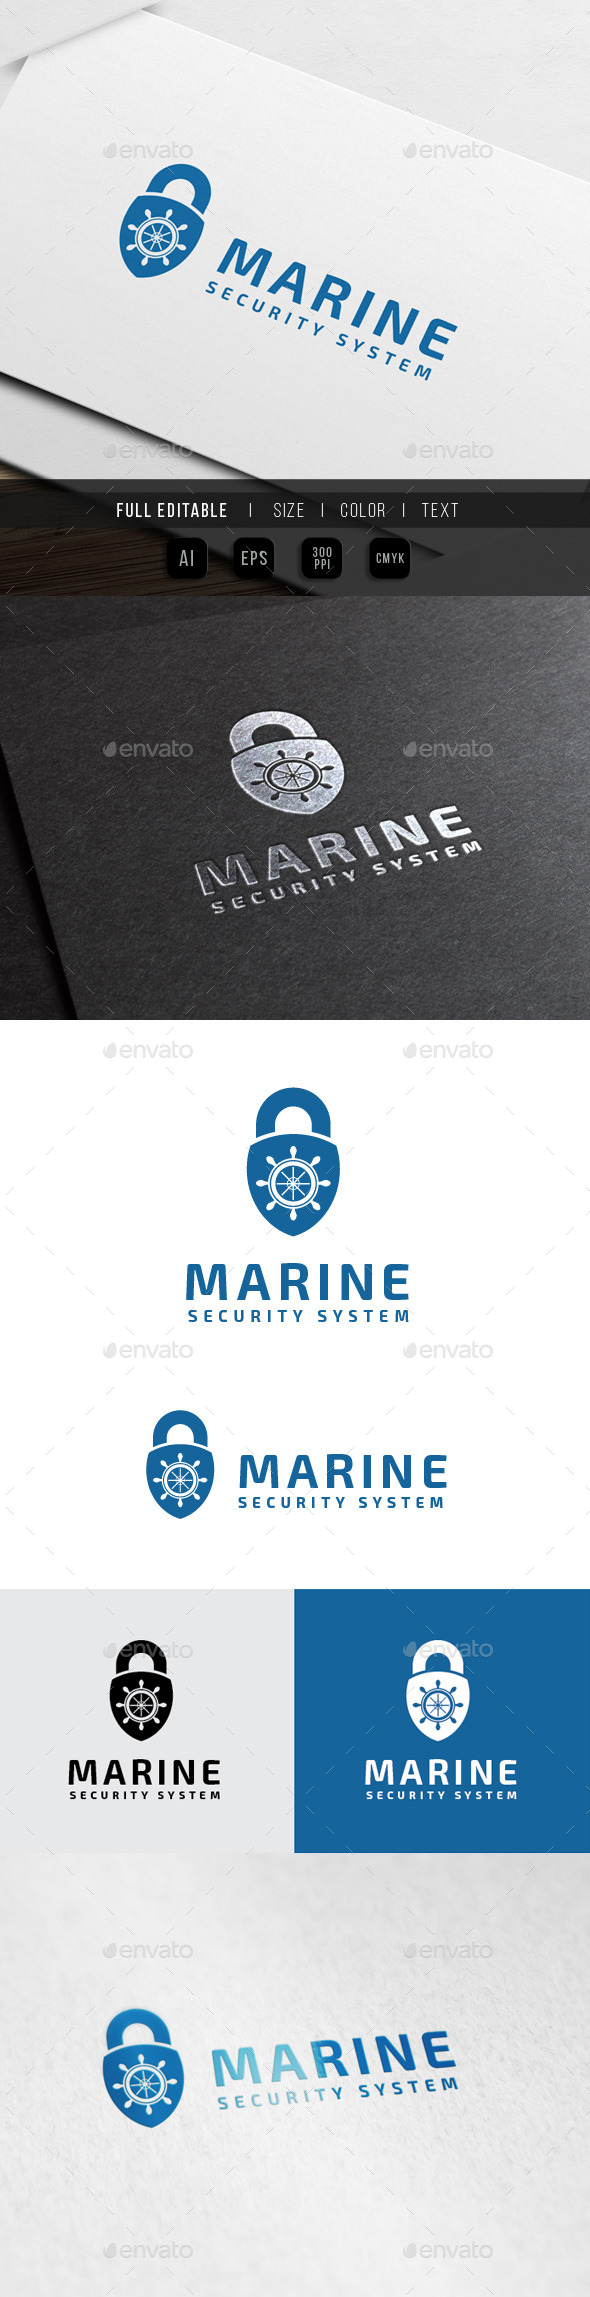 GraphicRiver Marine Security System 10159210